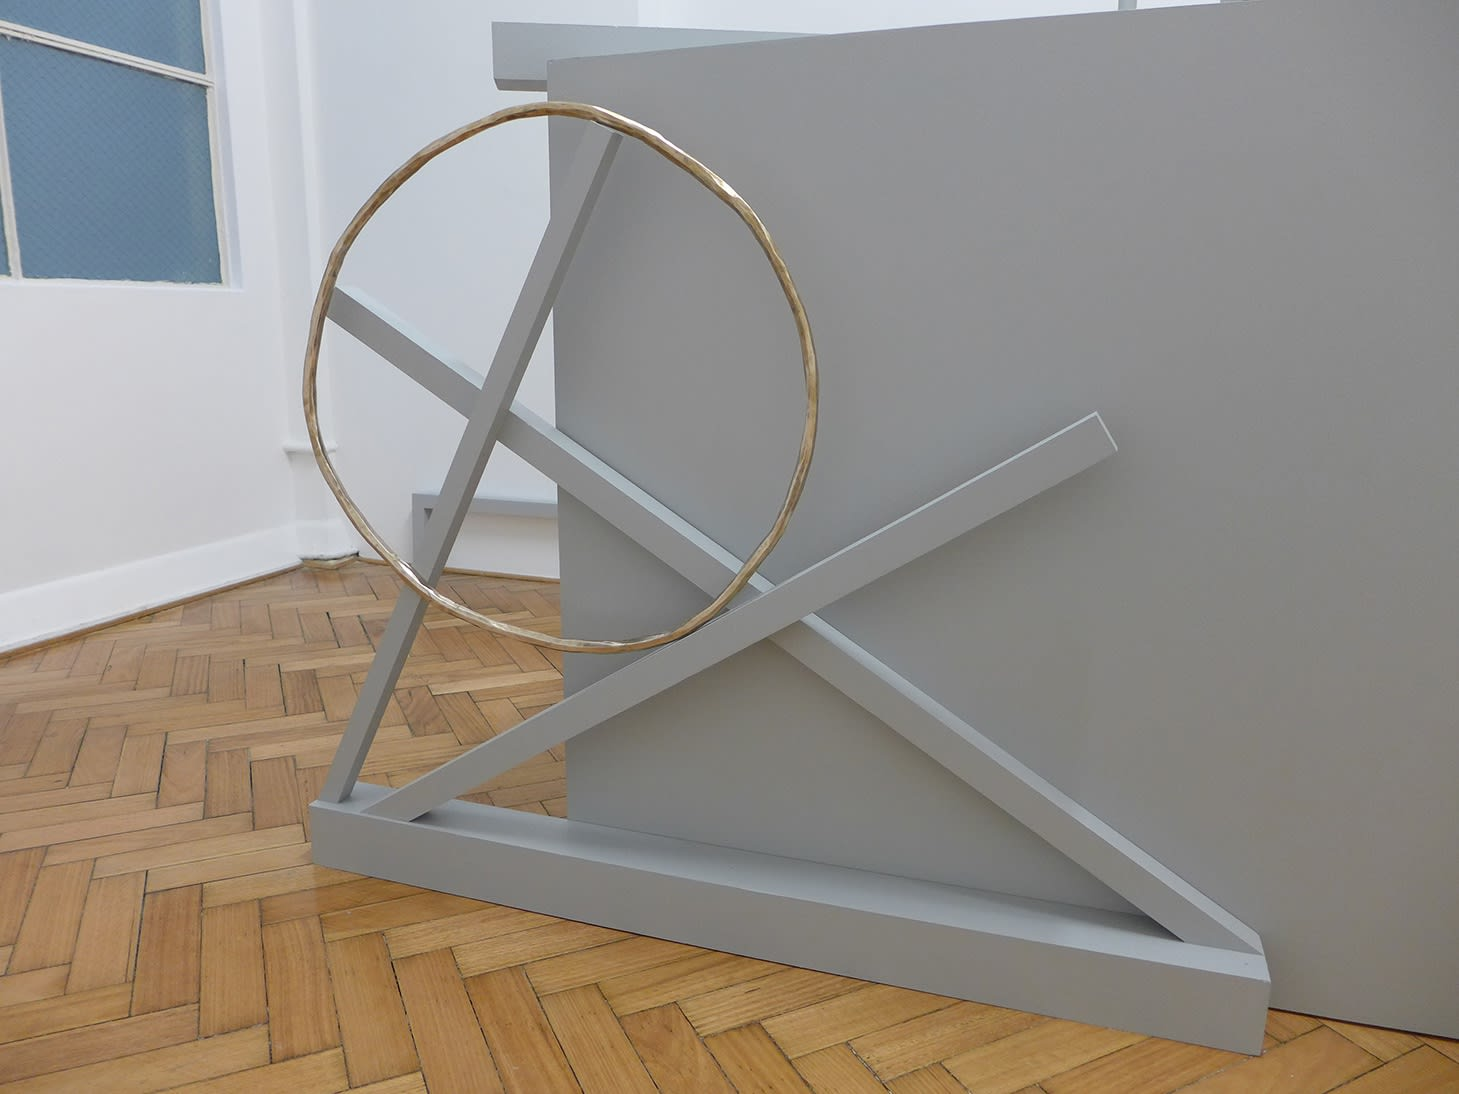 Bianca Hester, performance object #2, 2014